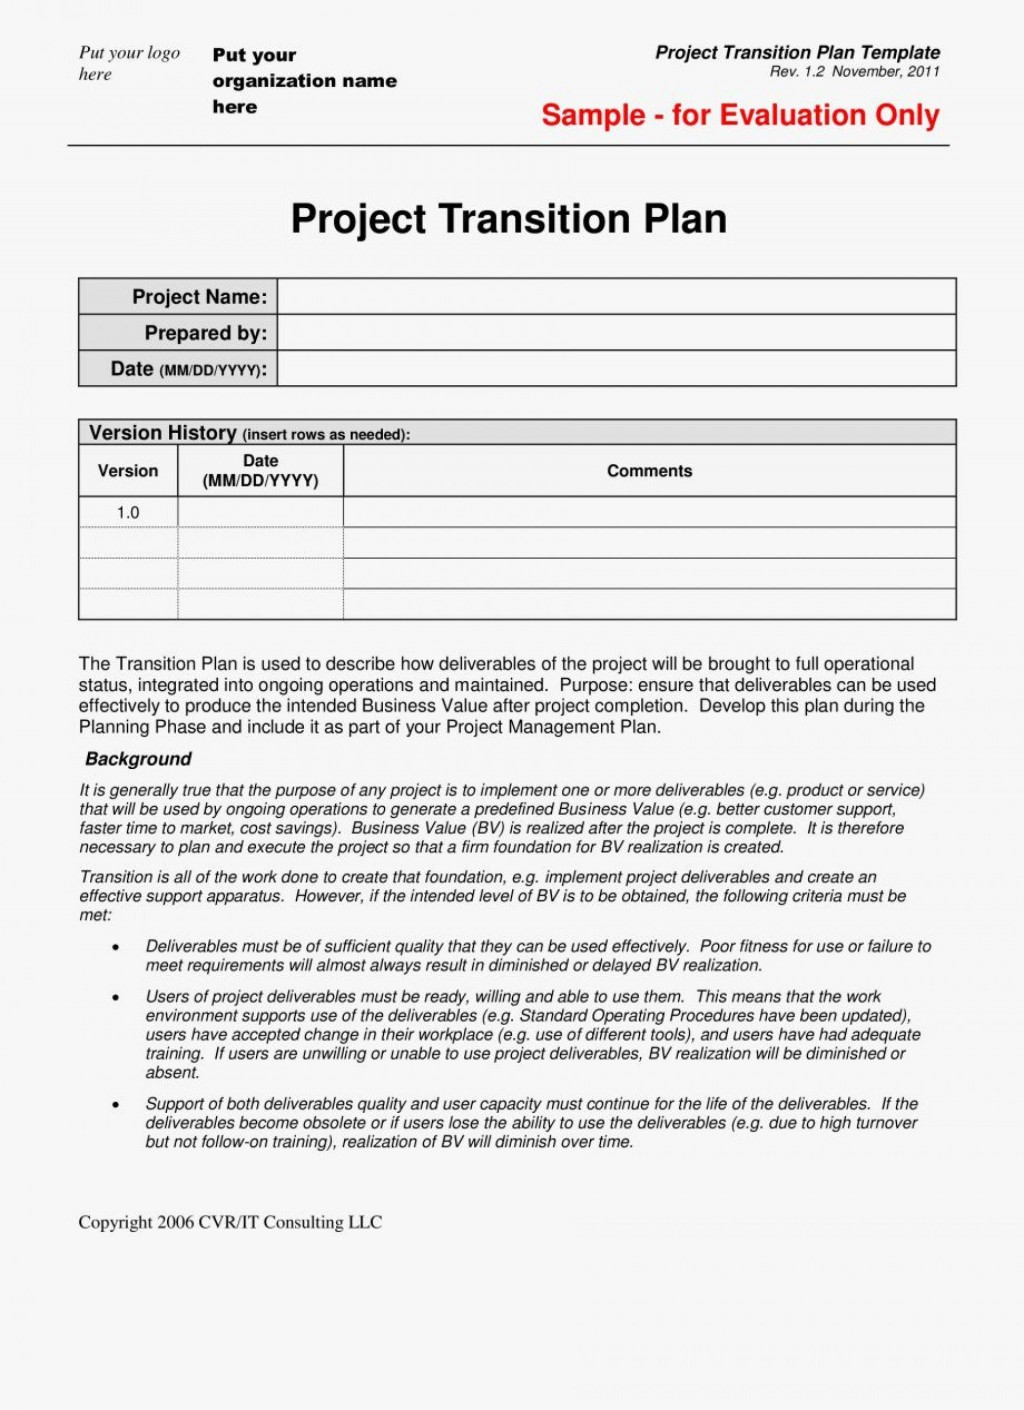 009 Stunning Project Transition Plan Sample High Def  Template Ppt OutLarge